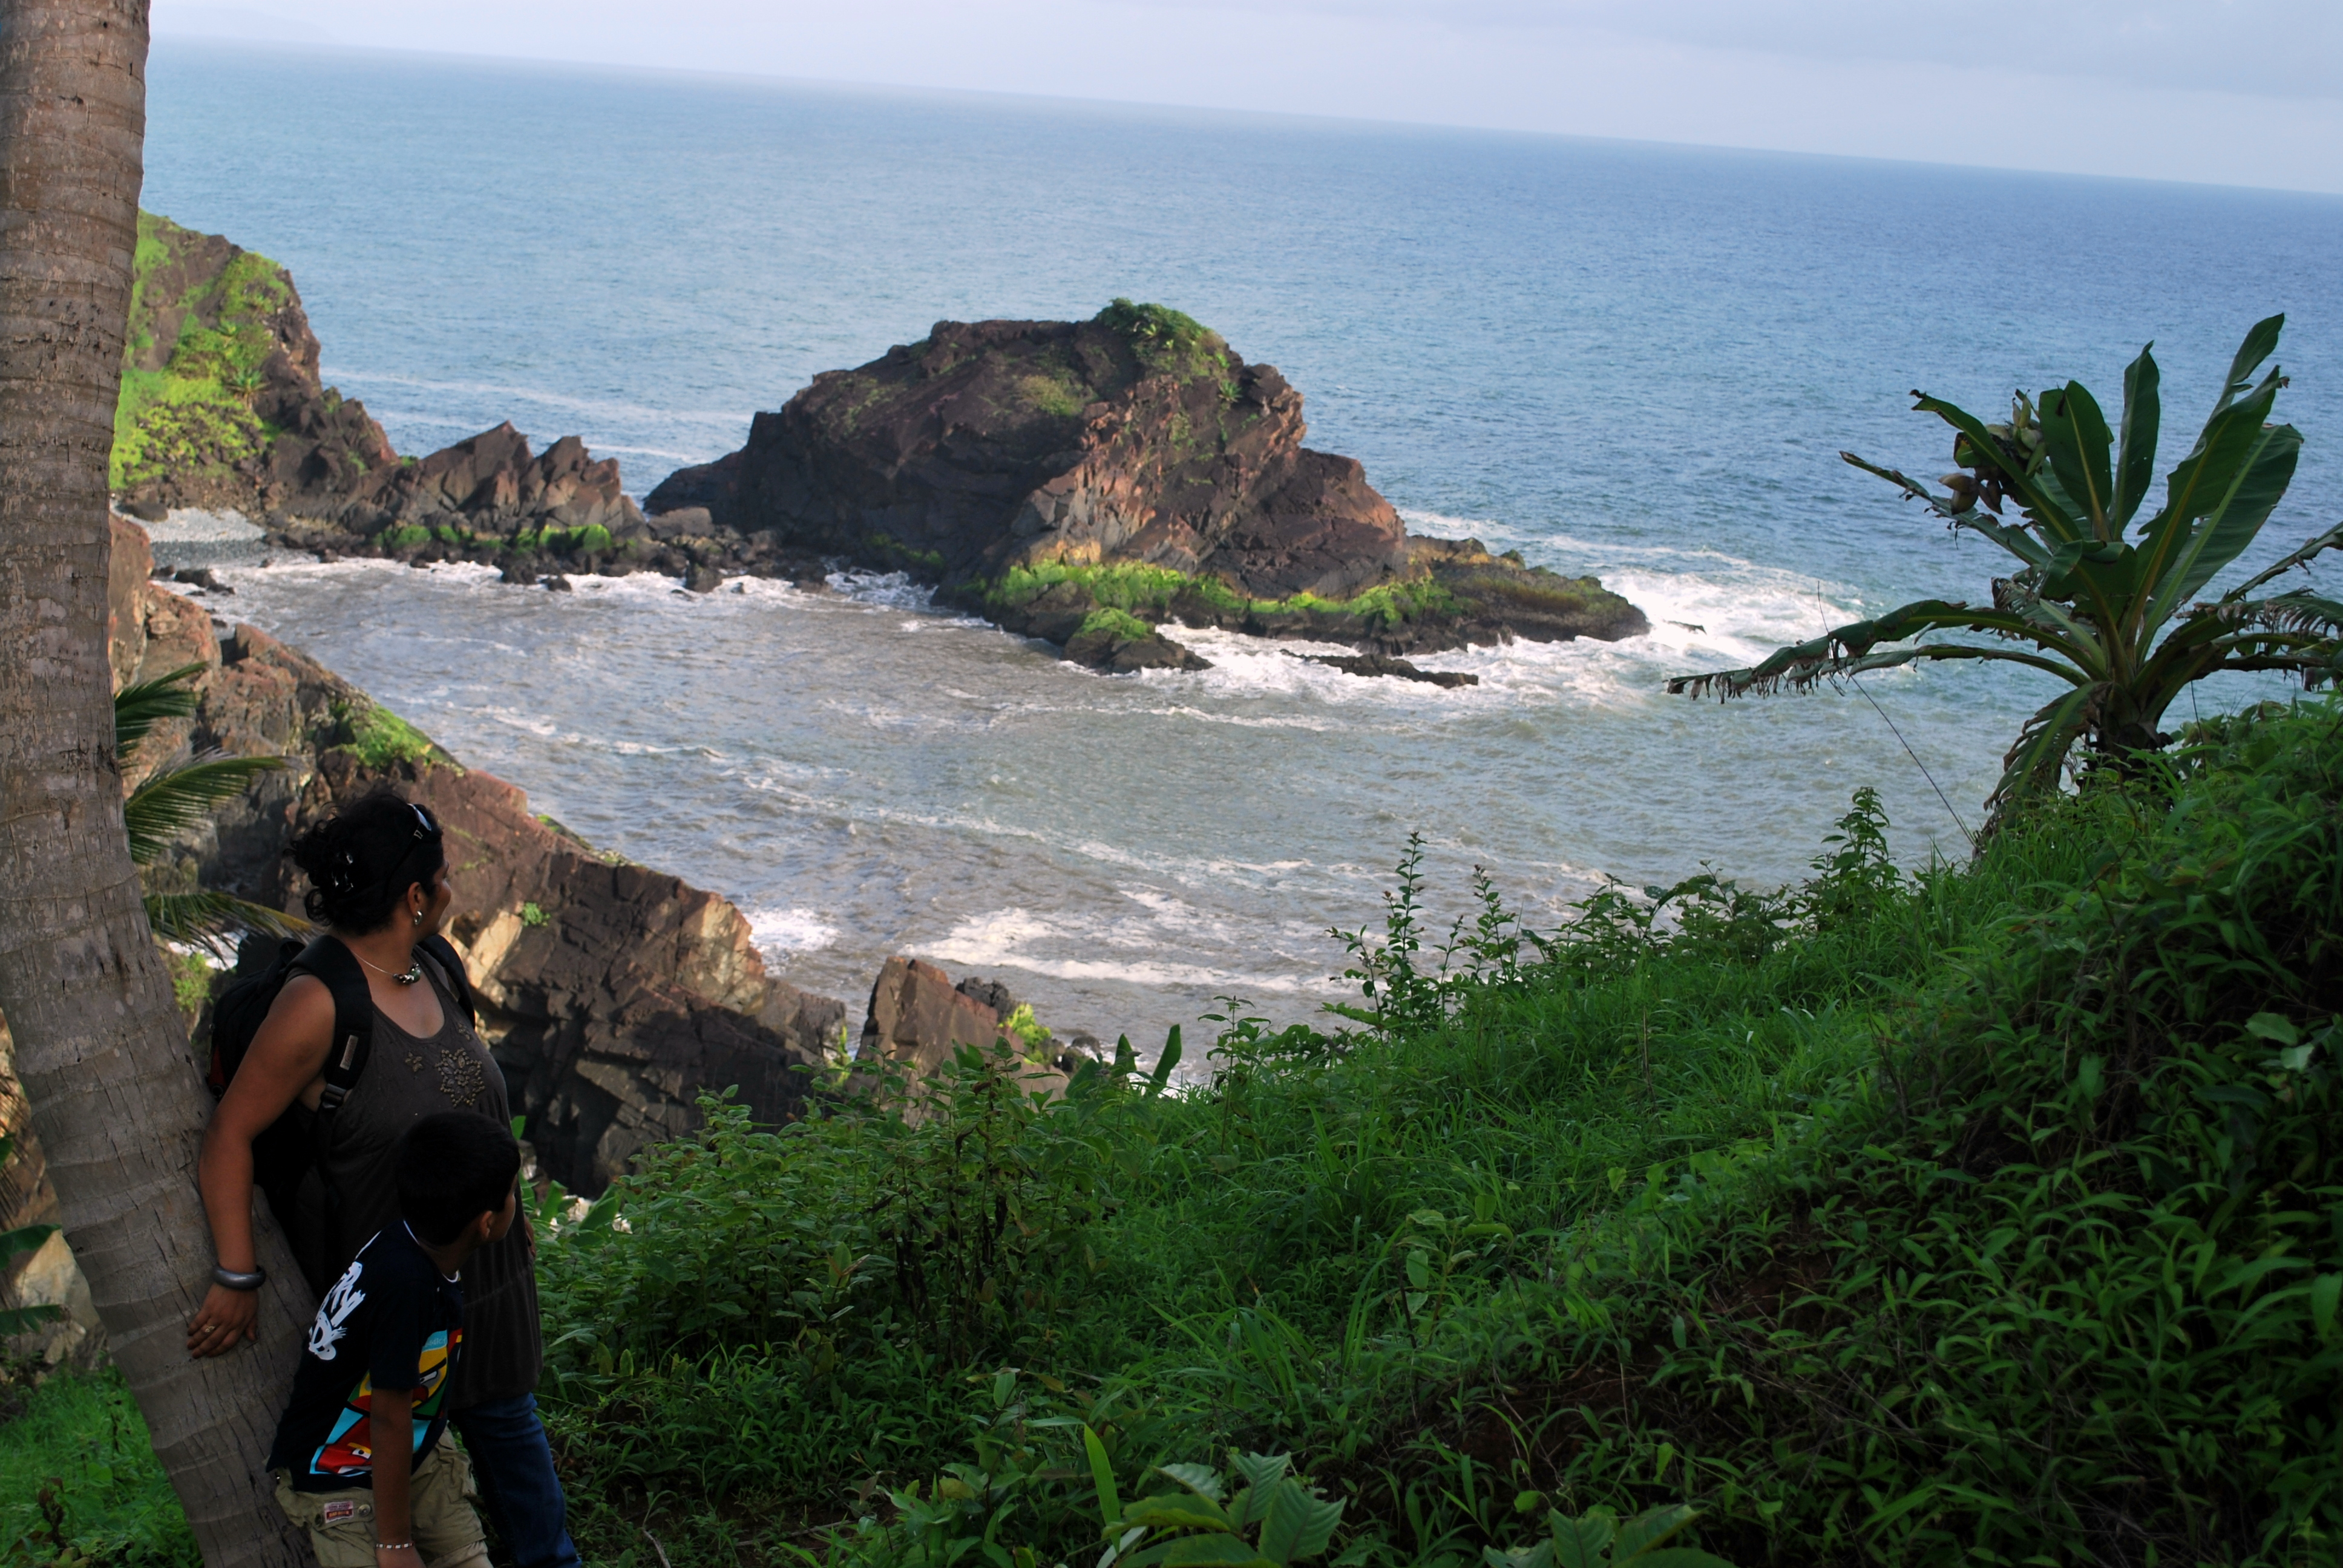 Cabo da Rama Fort Cabo da Rama, Cabo De Rama Fort – Hitchy's World